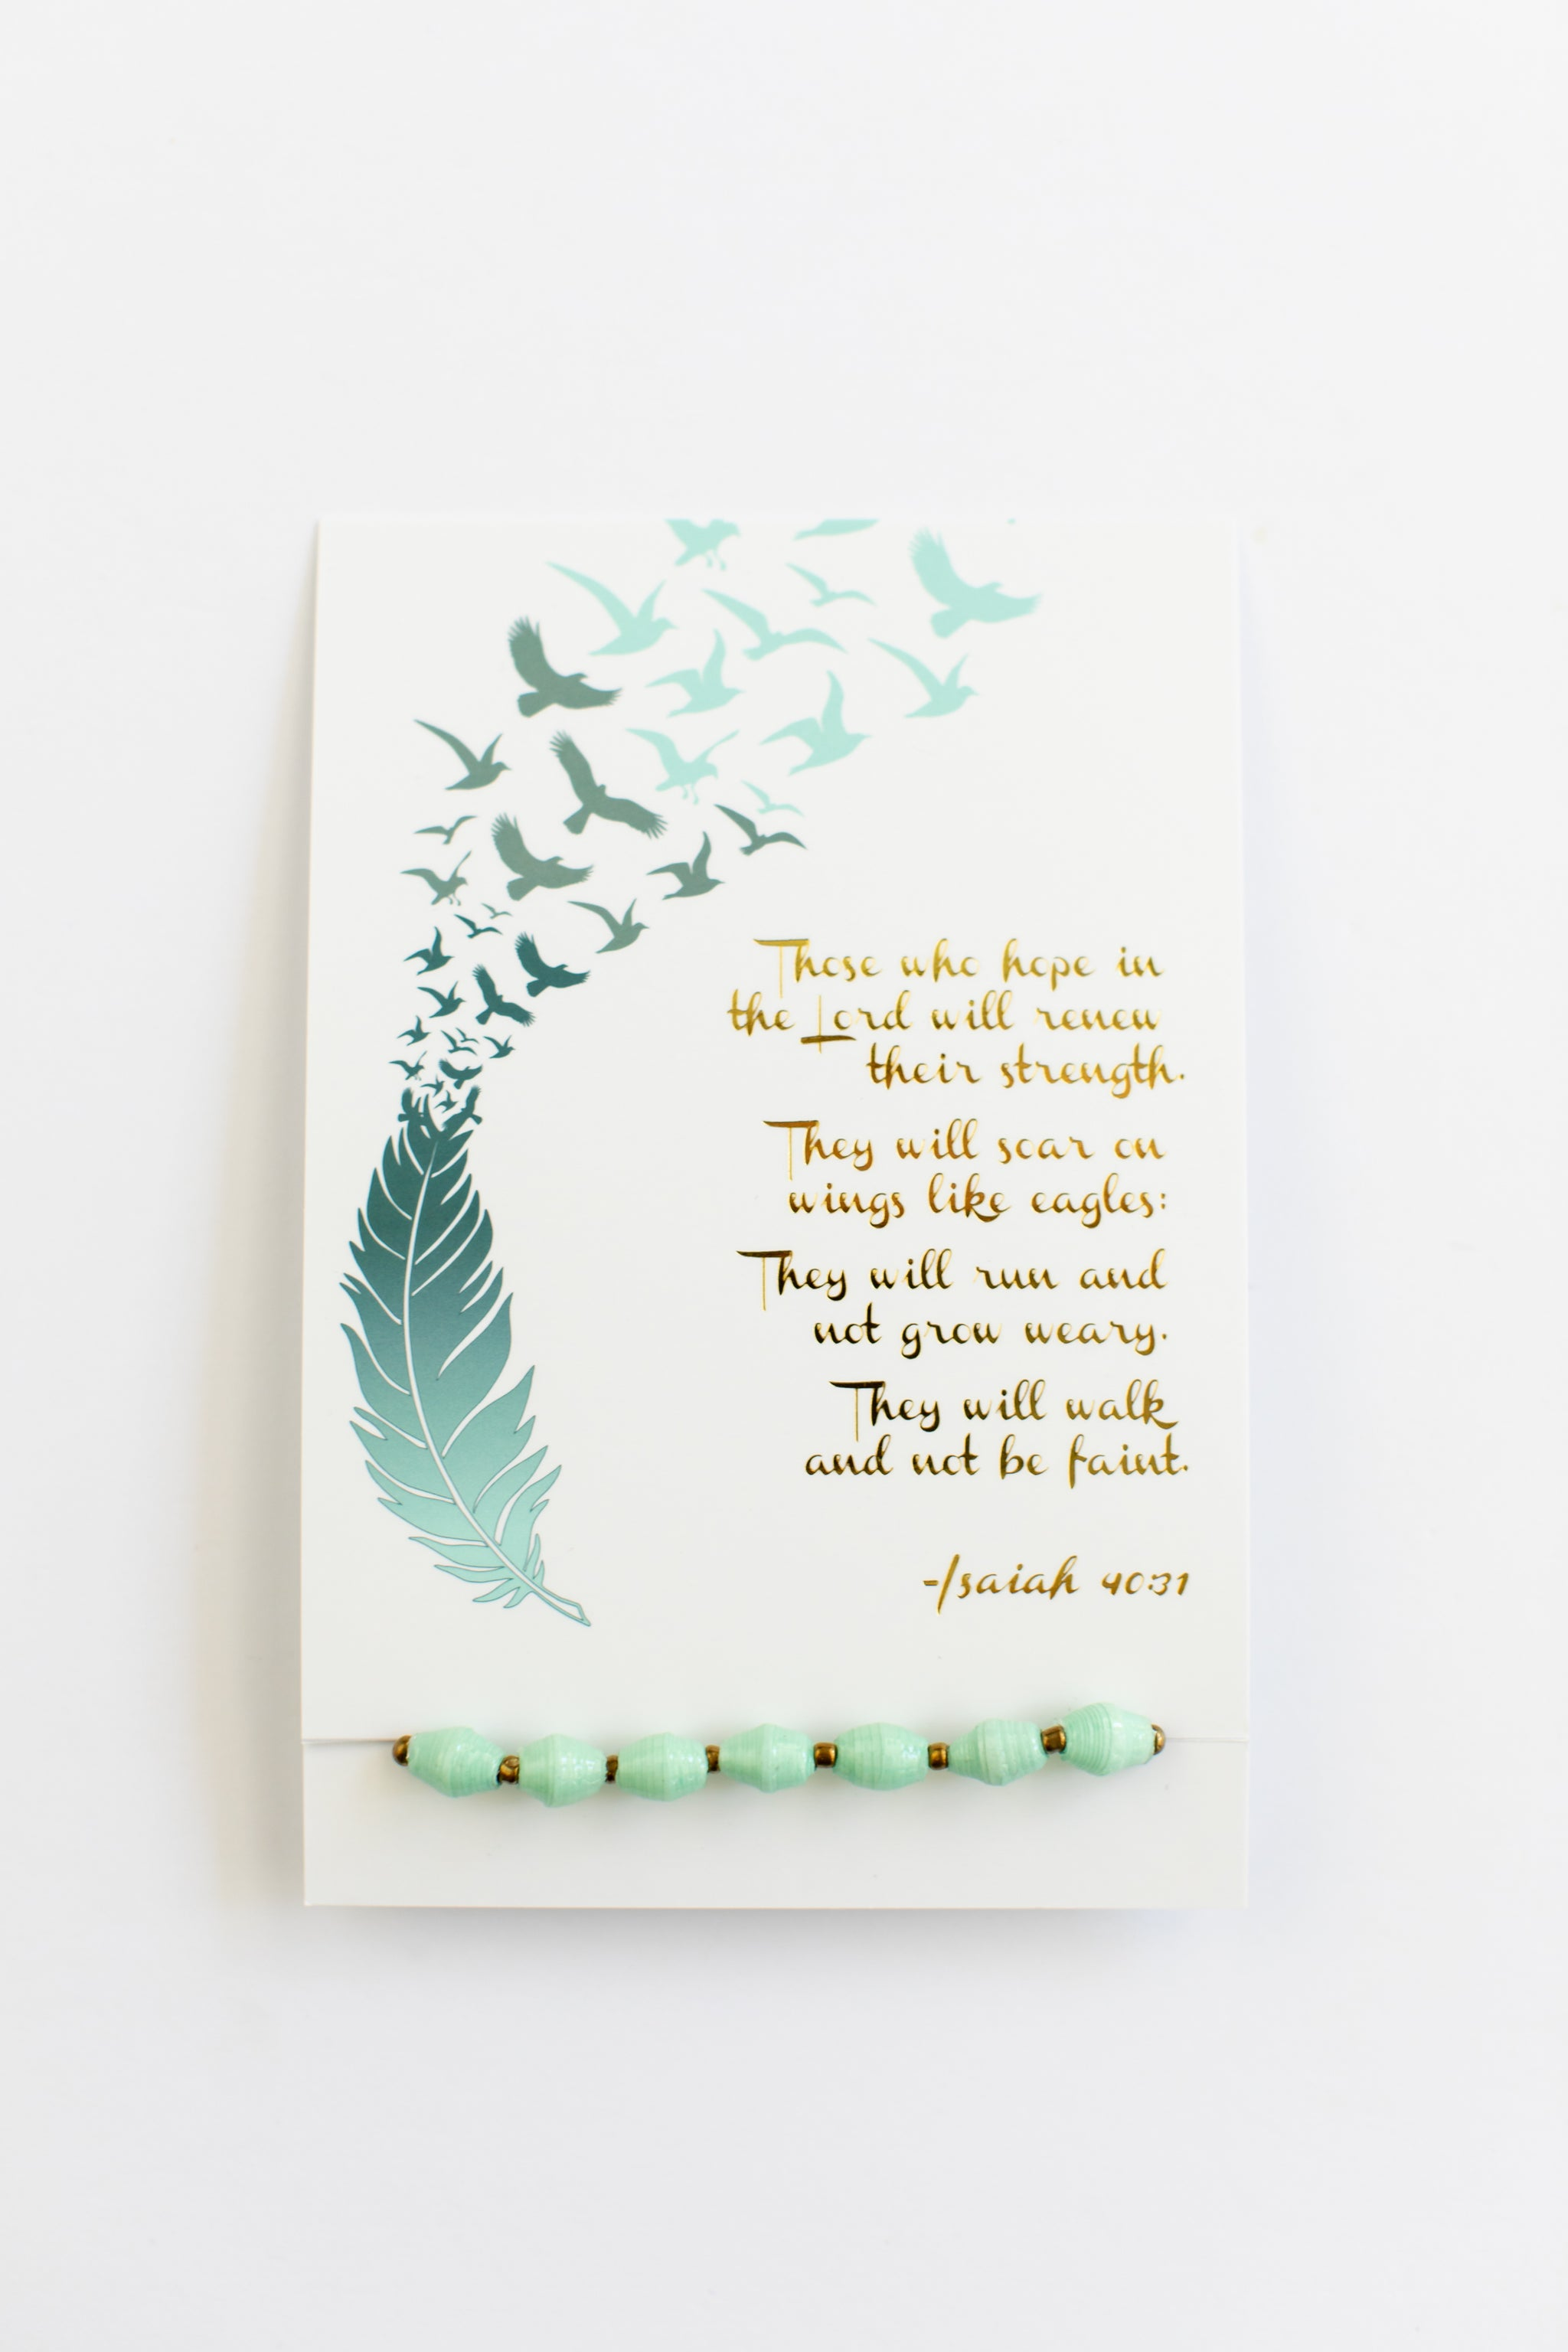 Isaiah 40:31 Card + Paper Bead Bracelet Bracelet - Fair Trade - Mercy House Global